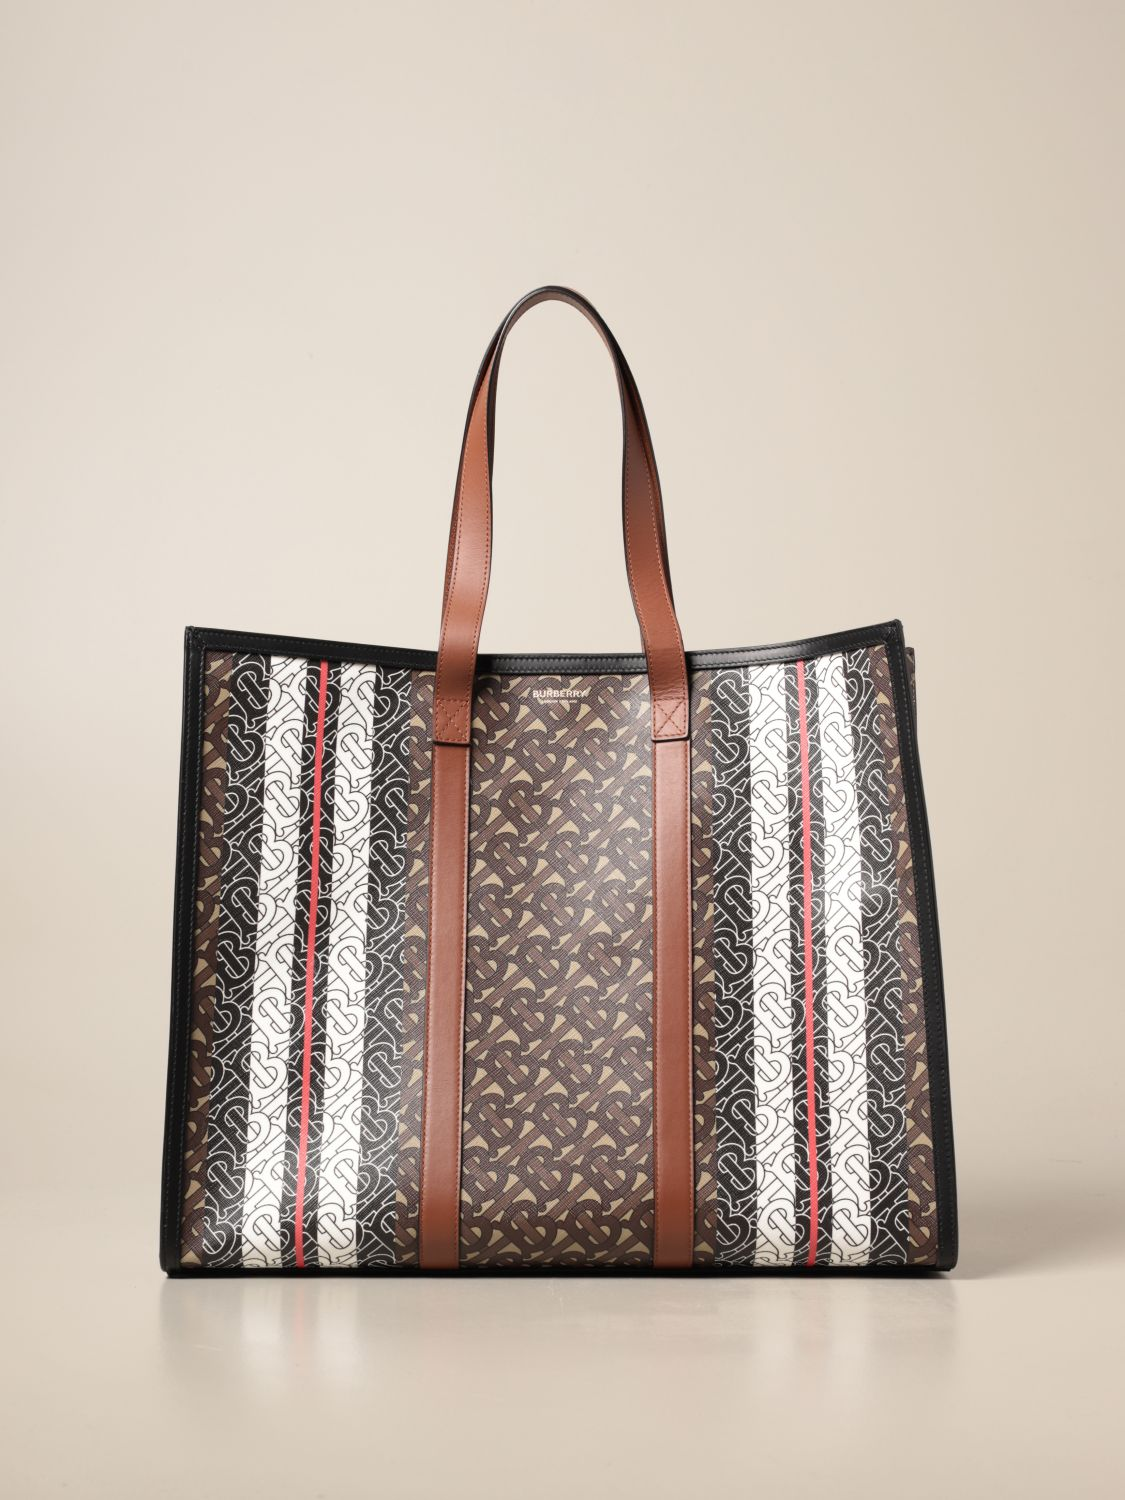 Tote Bags Burberry 8021488 Giglio Uk